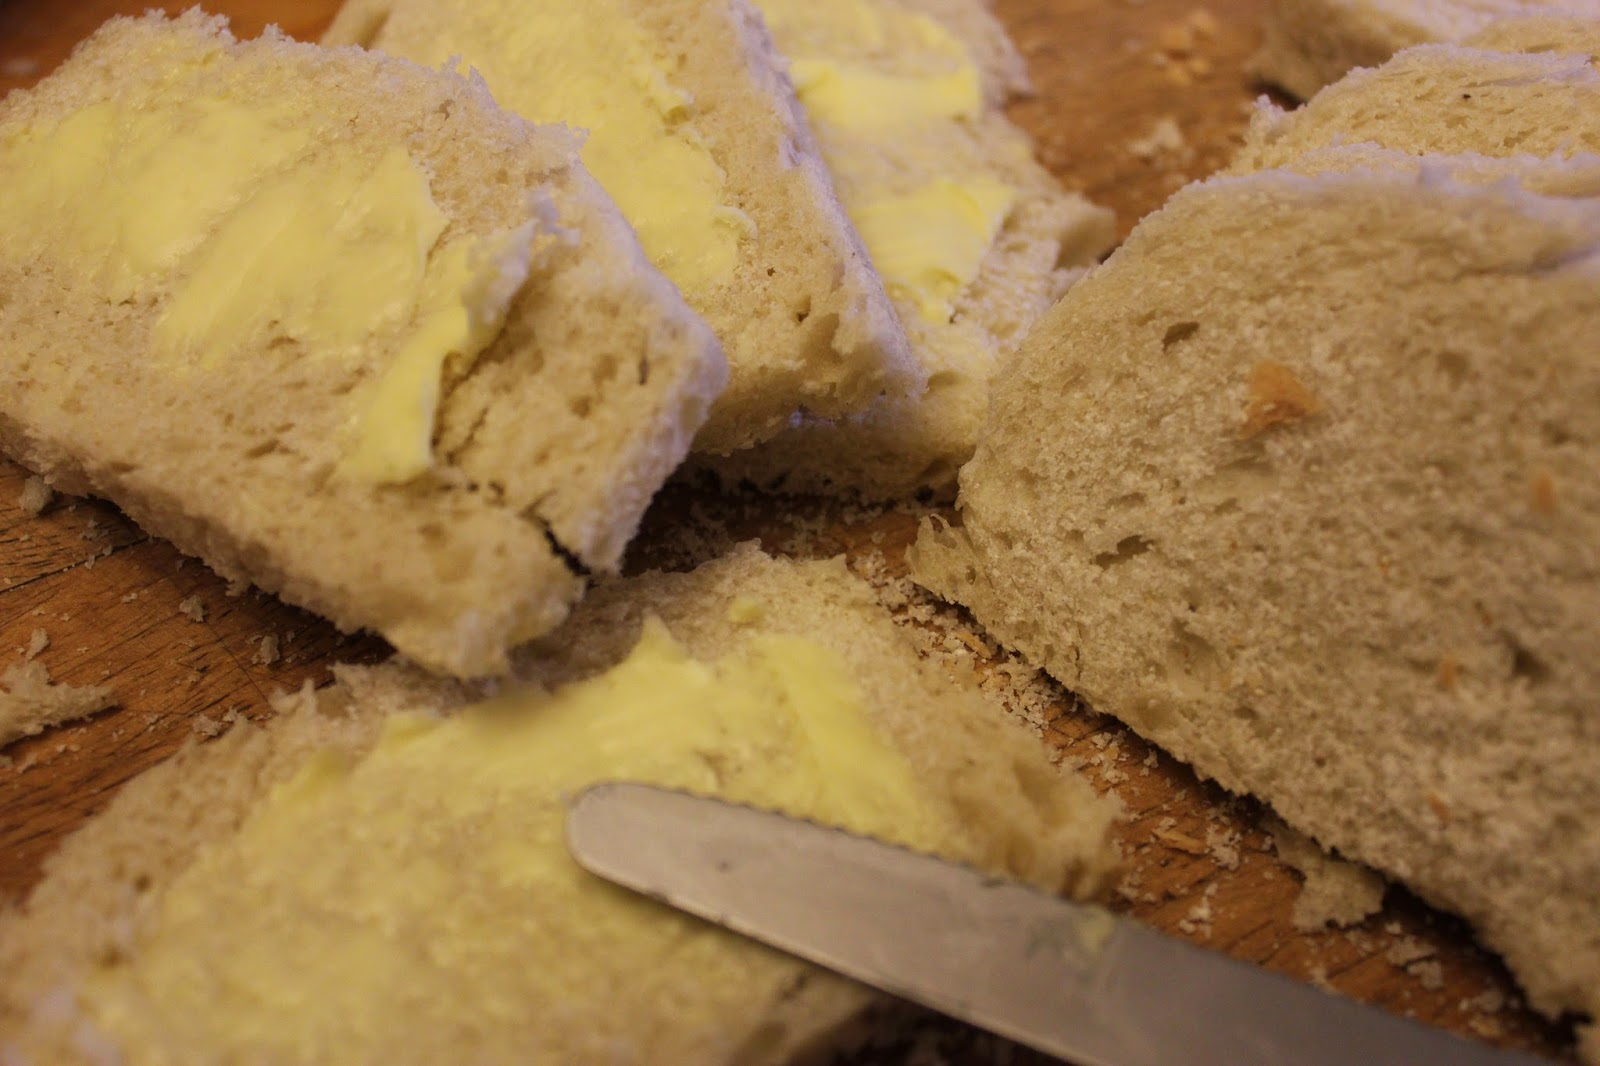 Buttering bread for organic bread and butter pudding recipe